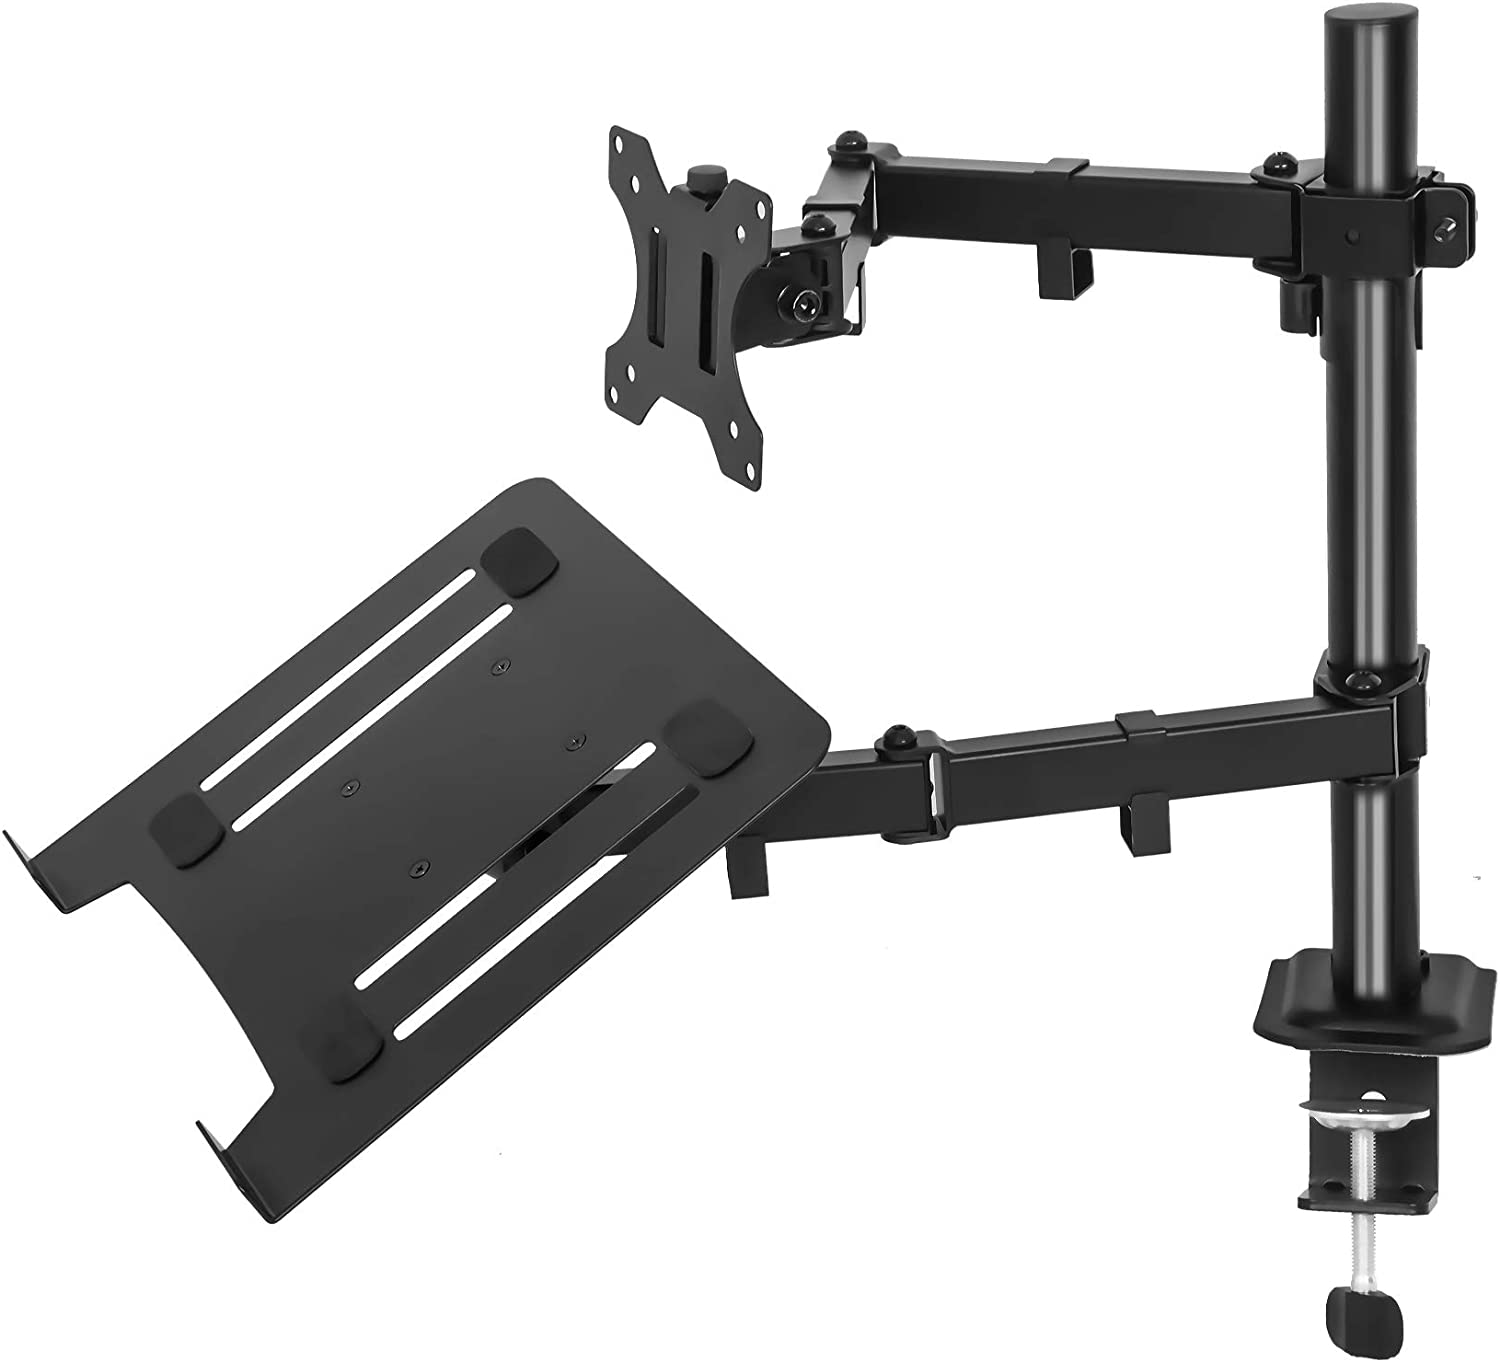 imlib Laptop Monitor Mount Colorado Springs Mall Max 69% OFF Stand Height Adjustable - Desk